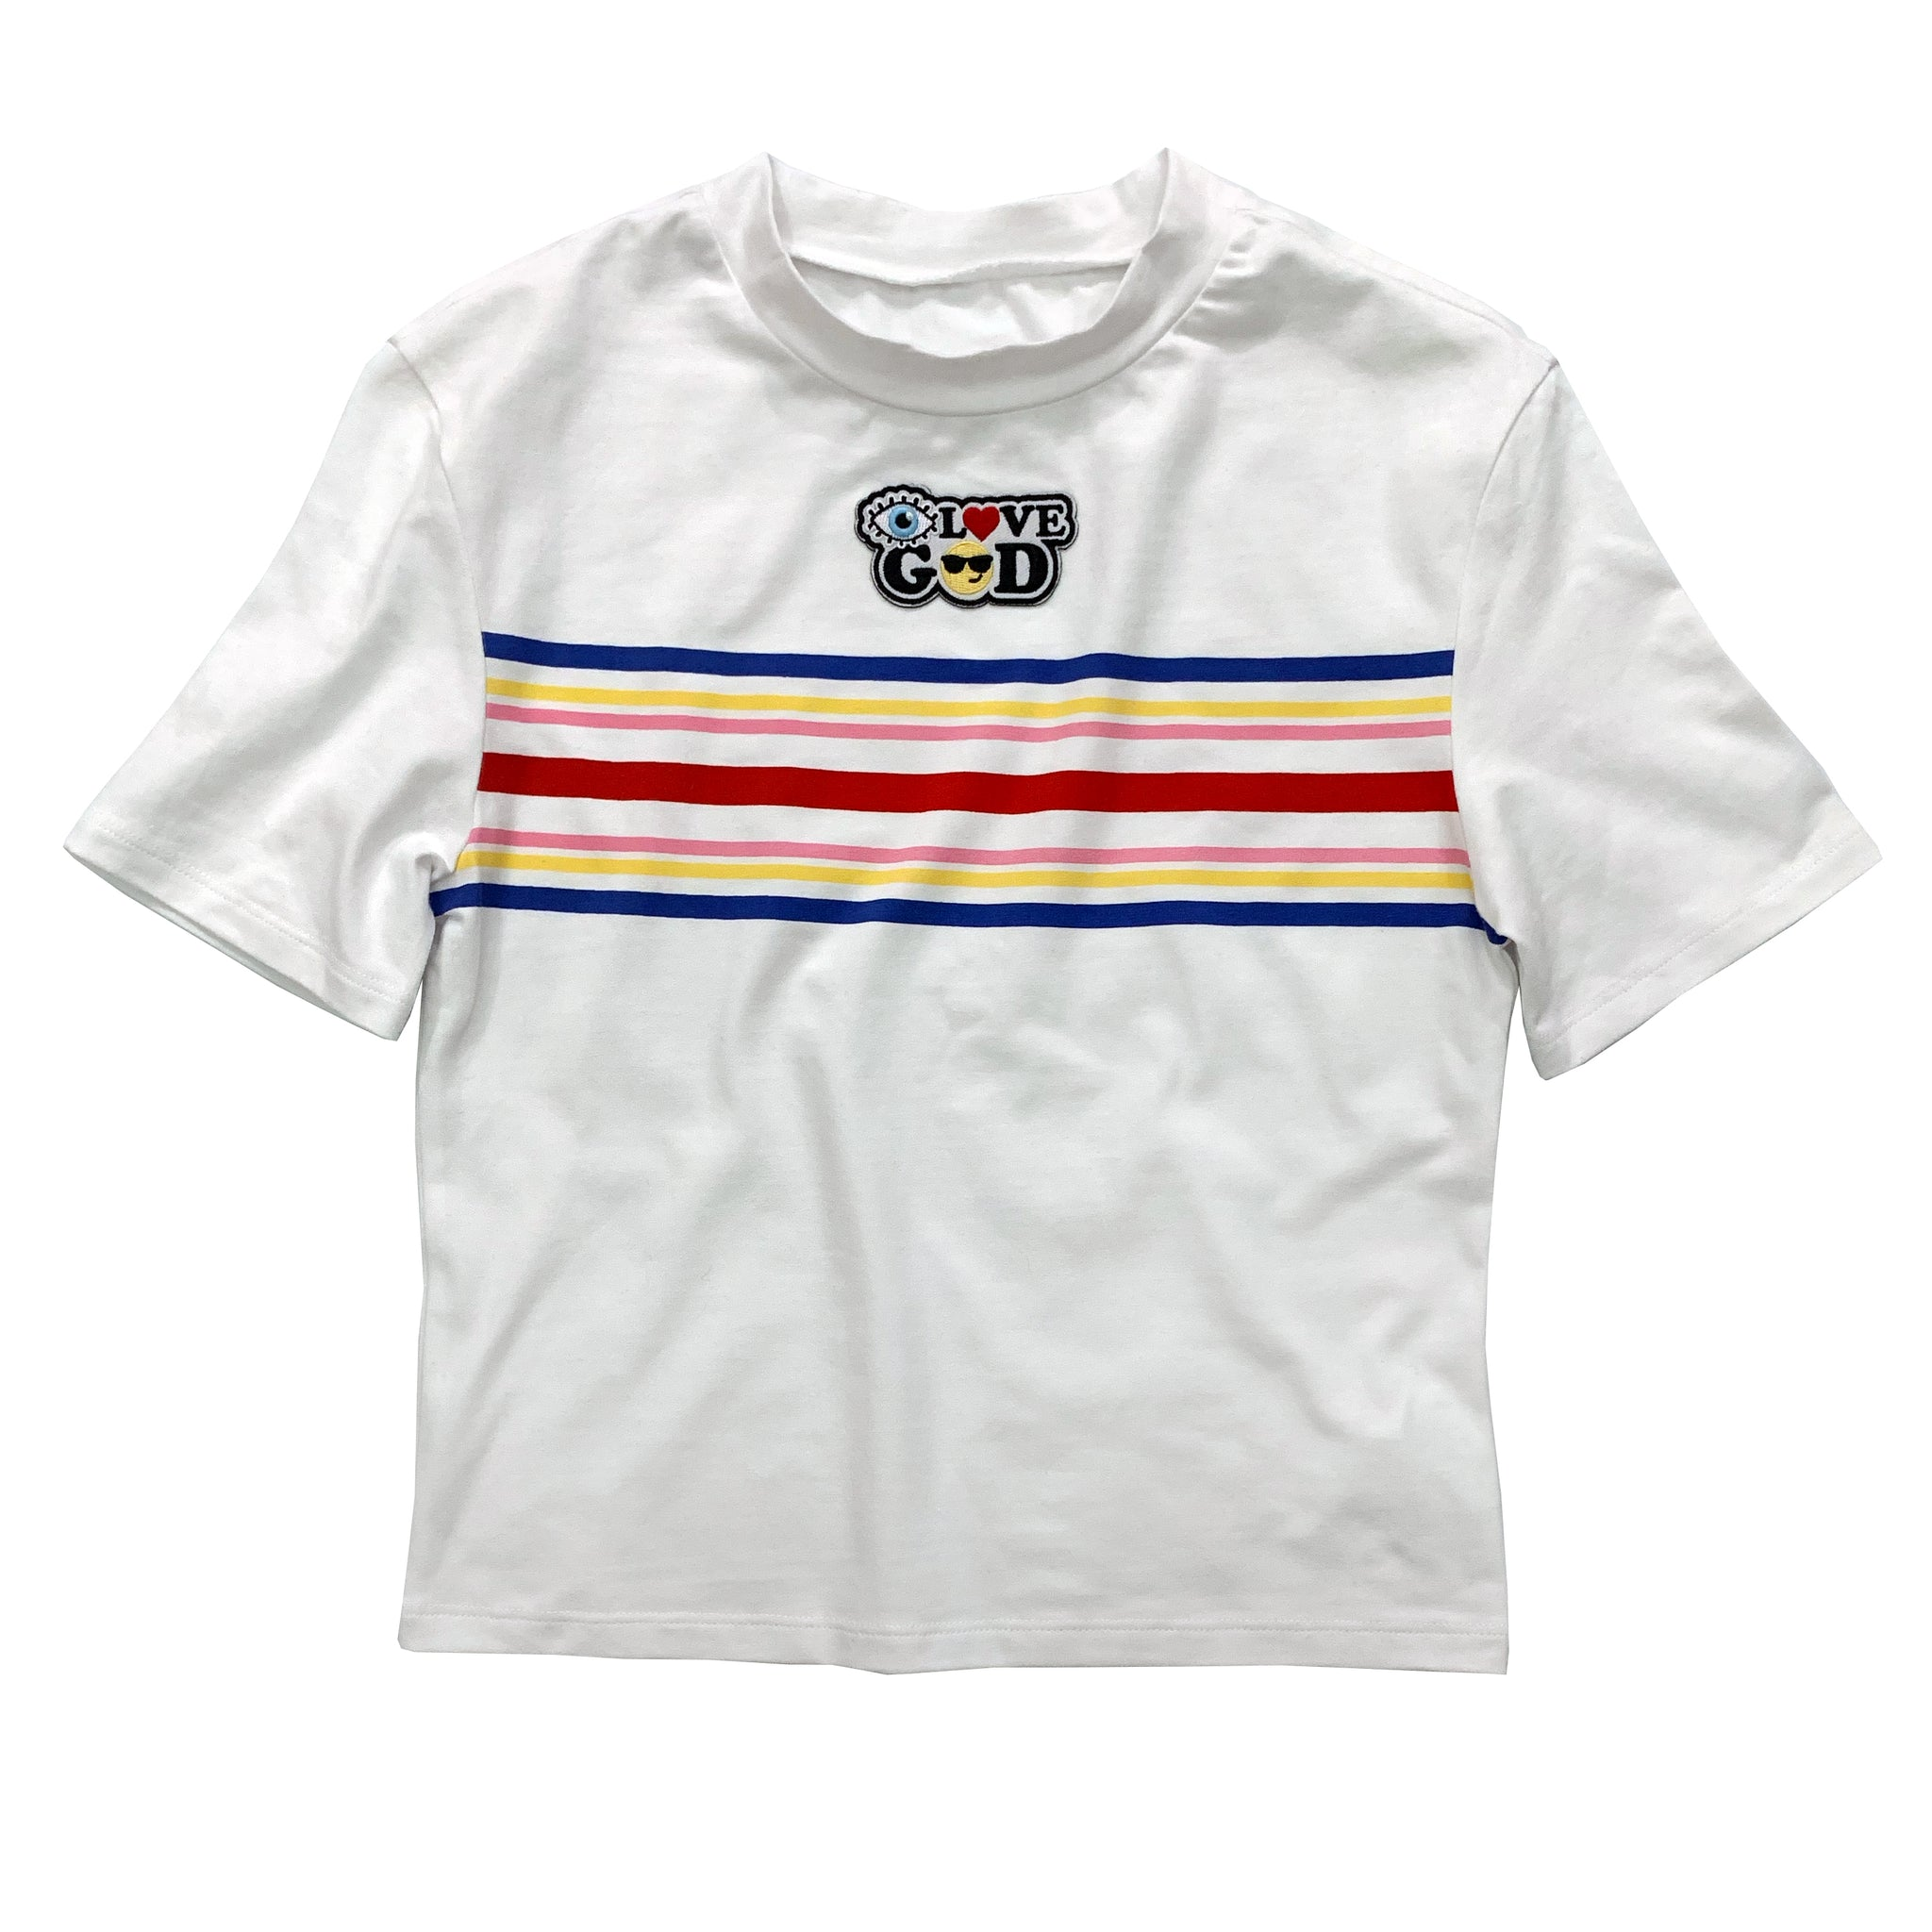 White I love God stripe Tee